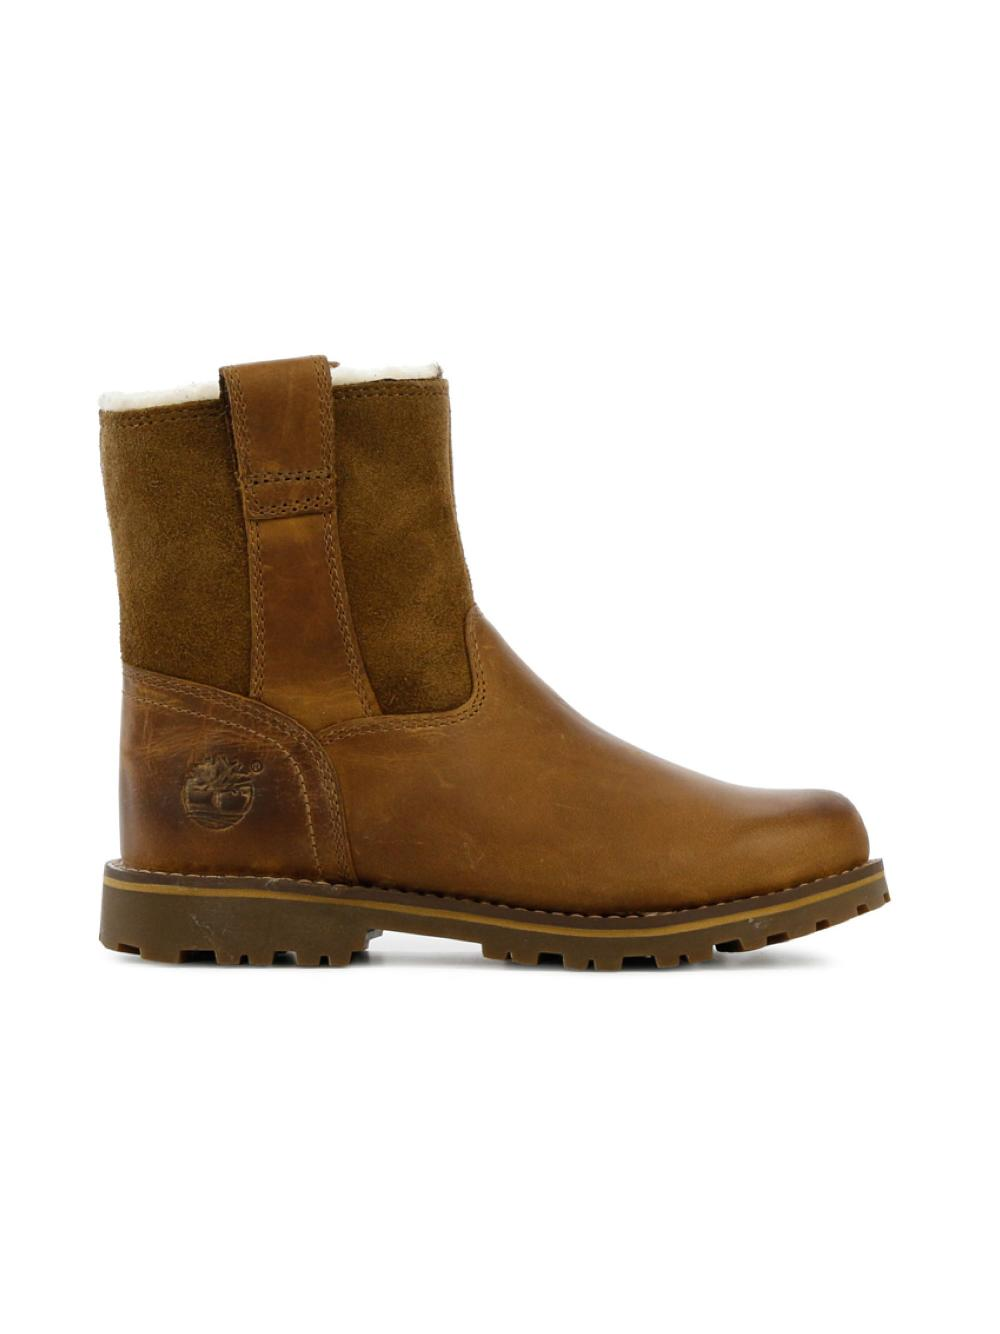 100% echt promotie laagste korting timberland le chic zomerjas